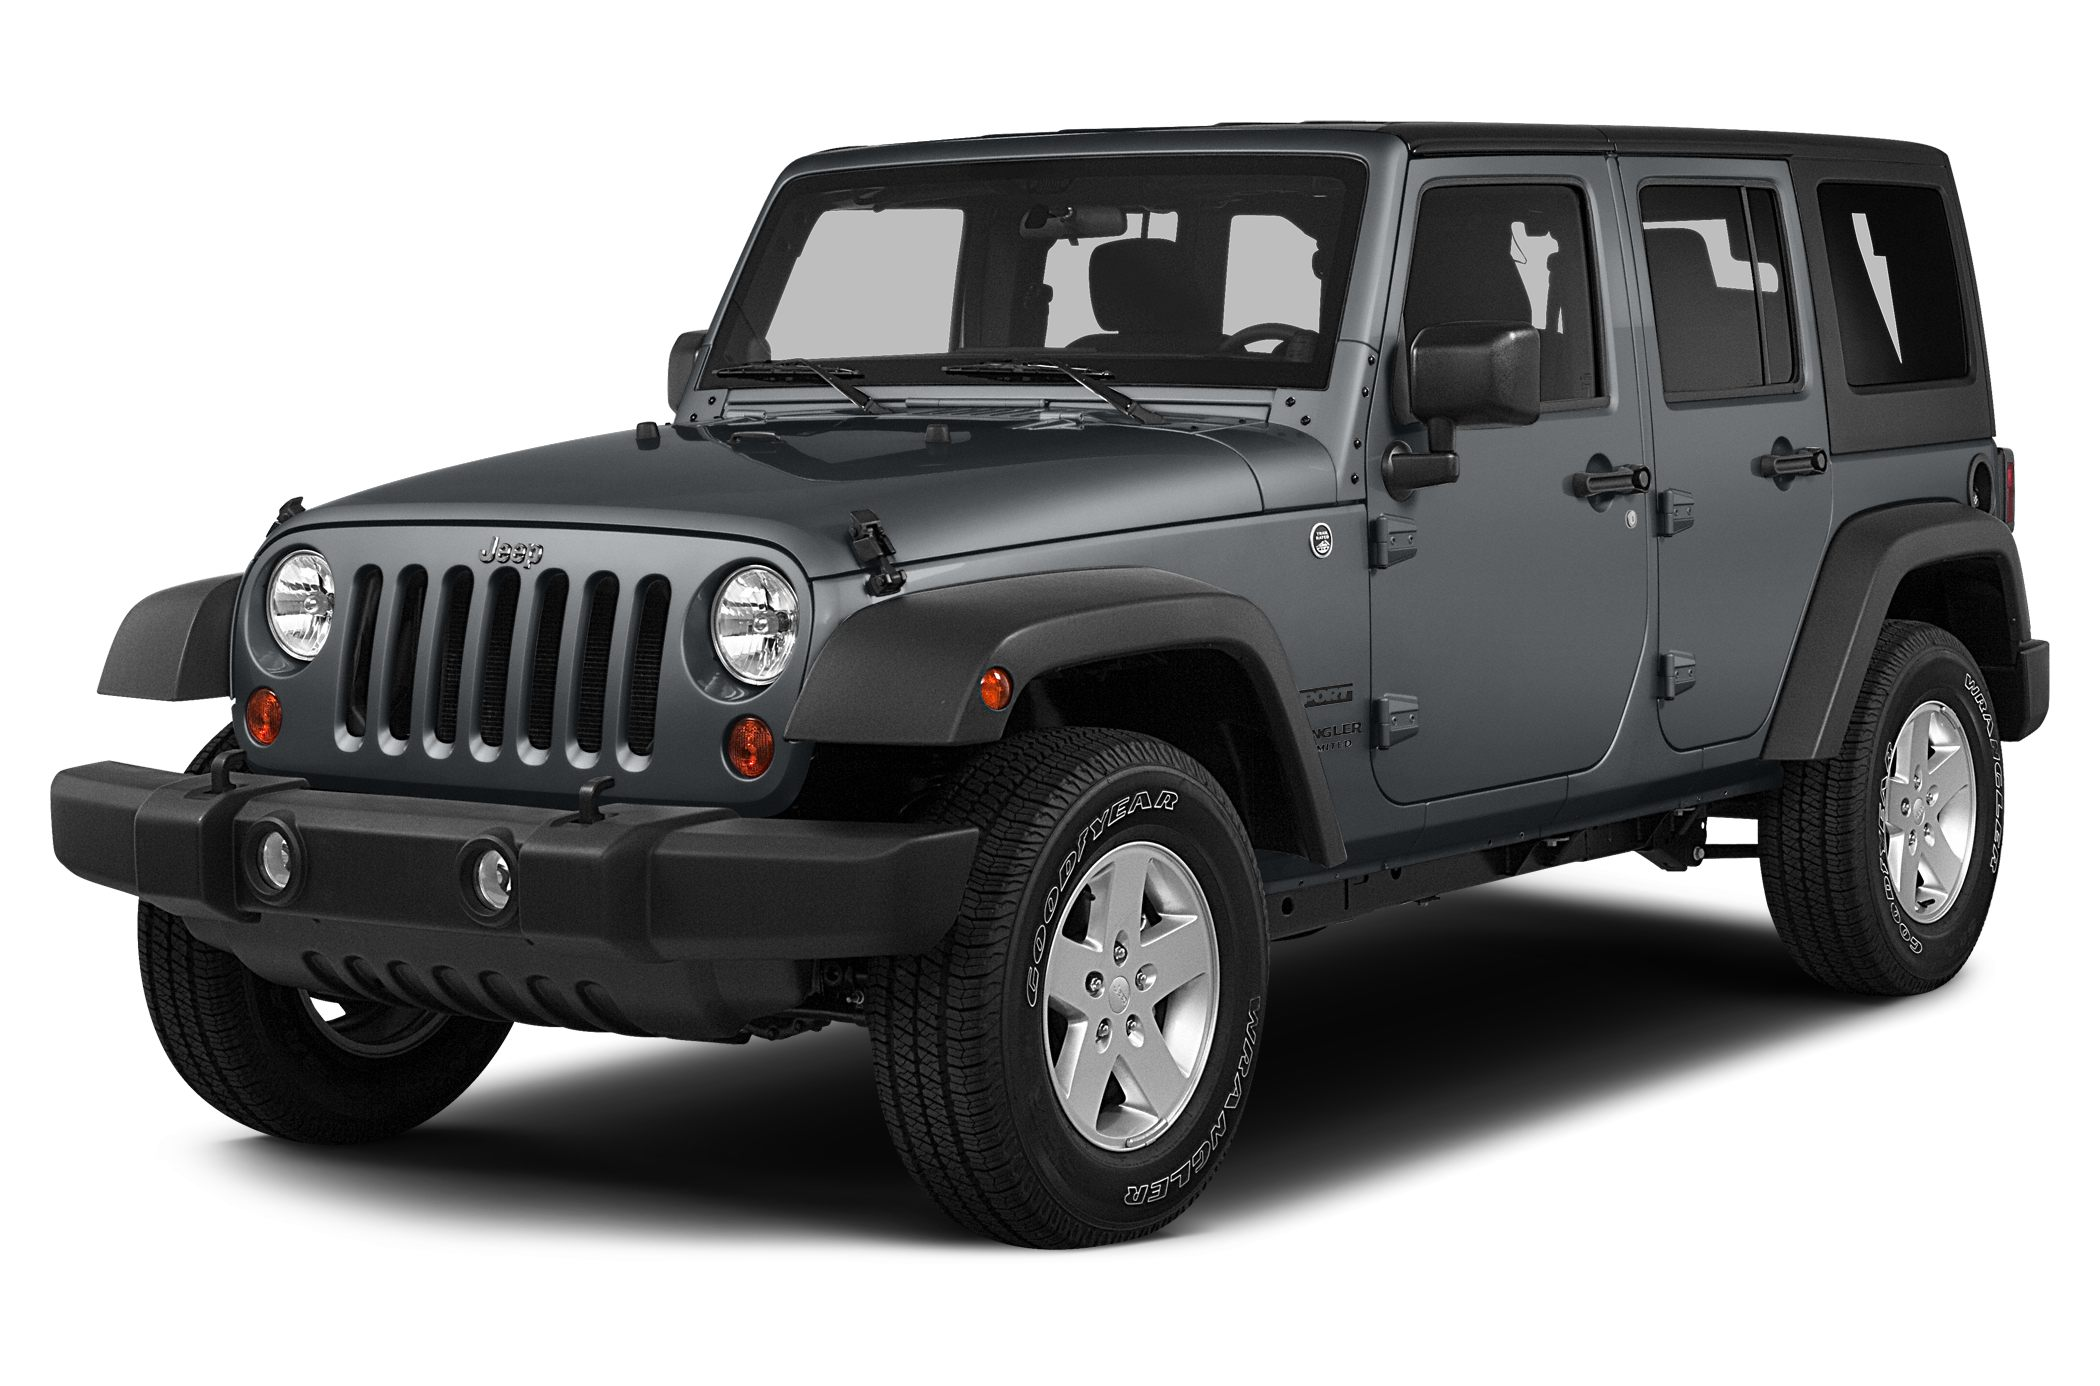 2013 Jeep Wrangler Unlimited Rubicon SUV for sale in Milford for $38,999 with 24,504 miles